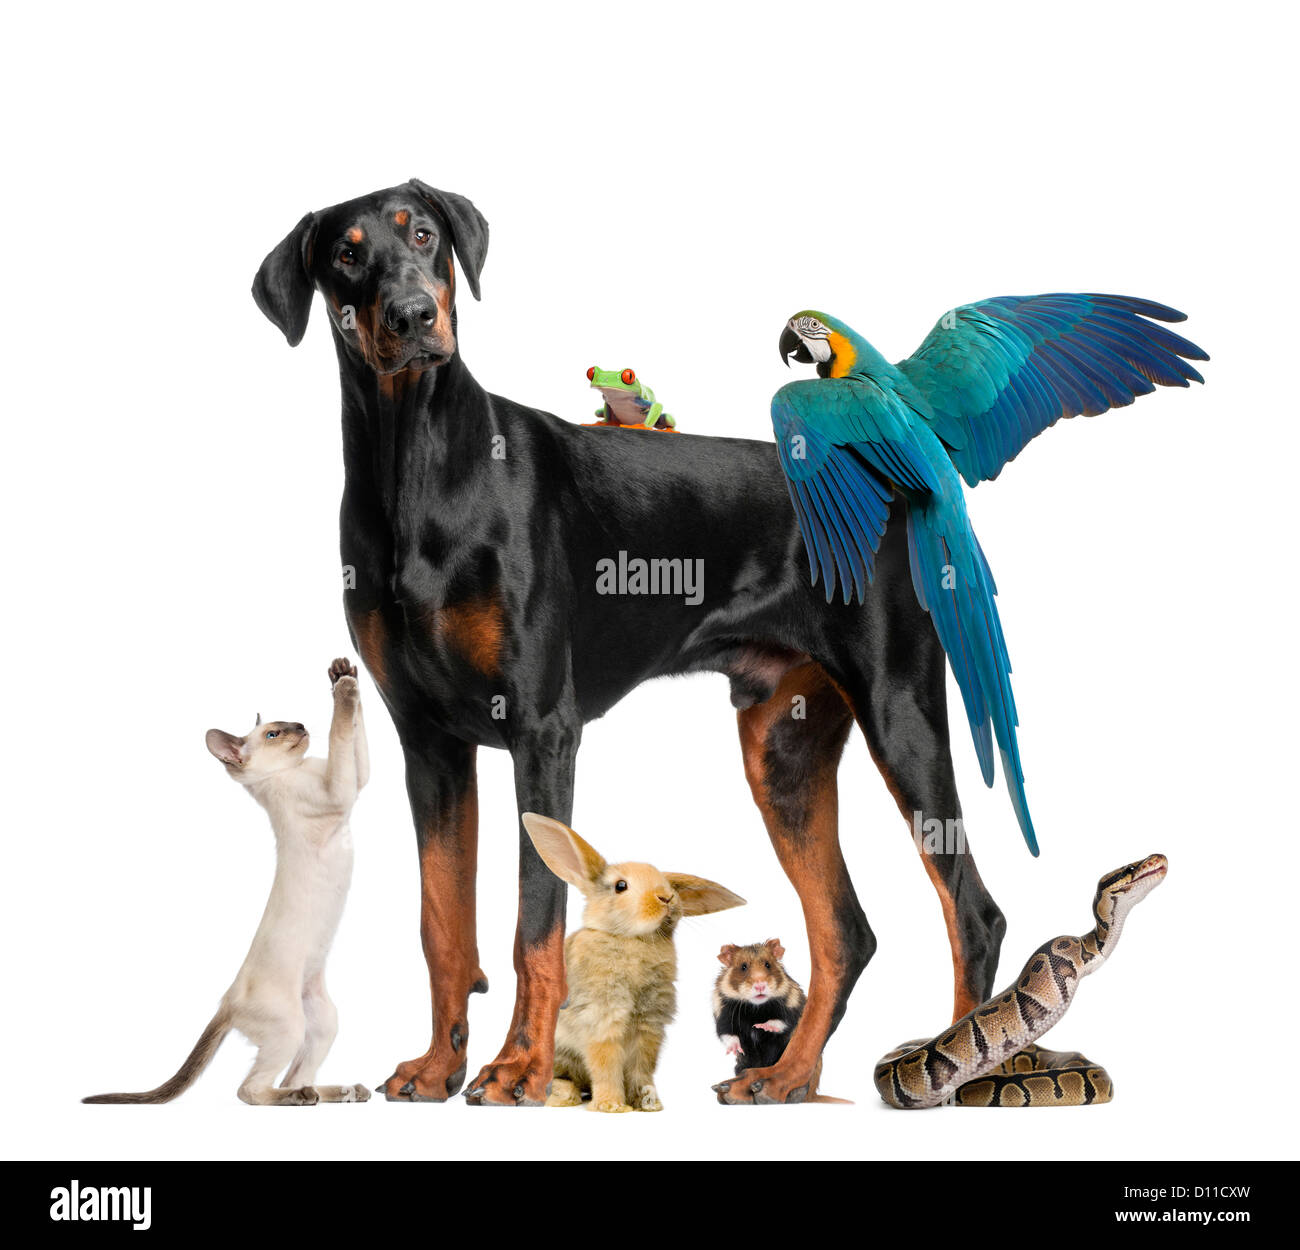 Group of pets and wild animals against white background - Stock Image